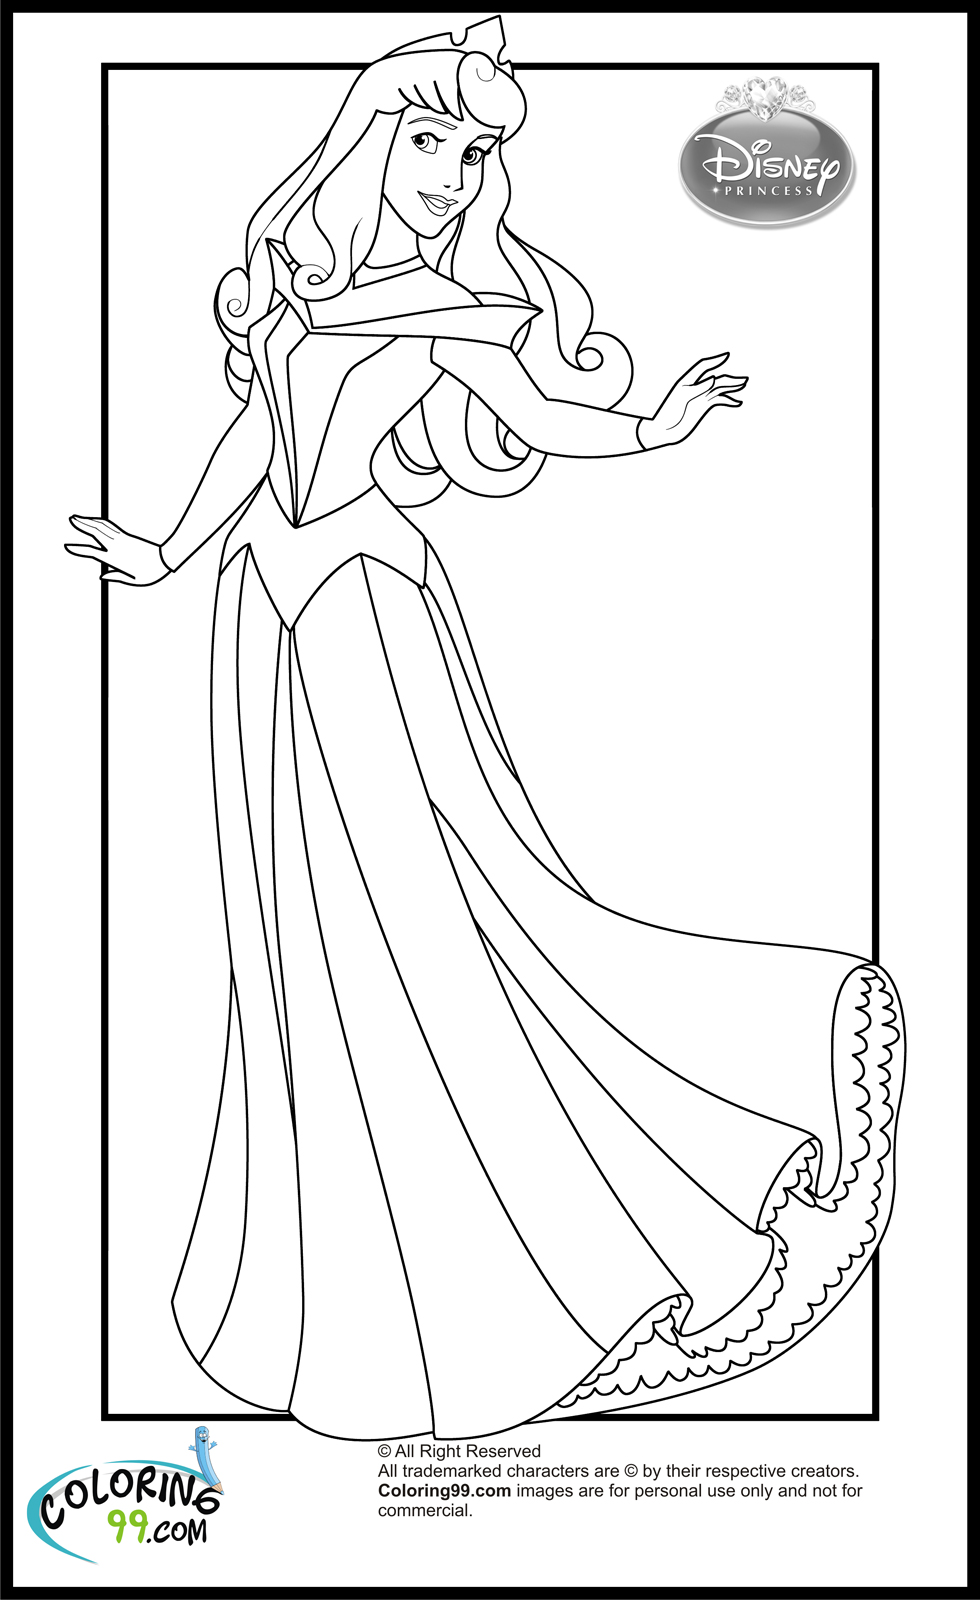 Princess Aurora - Free Colouring Pages